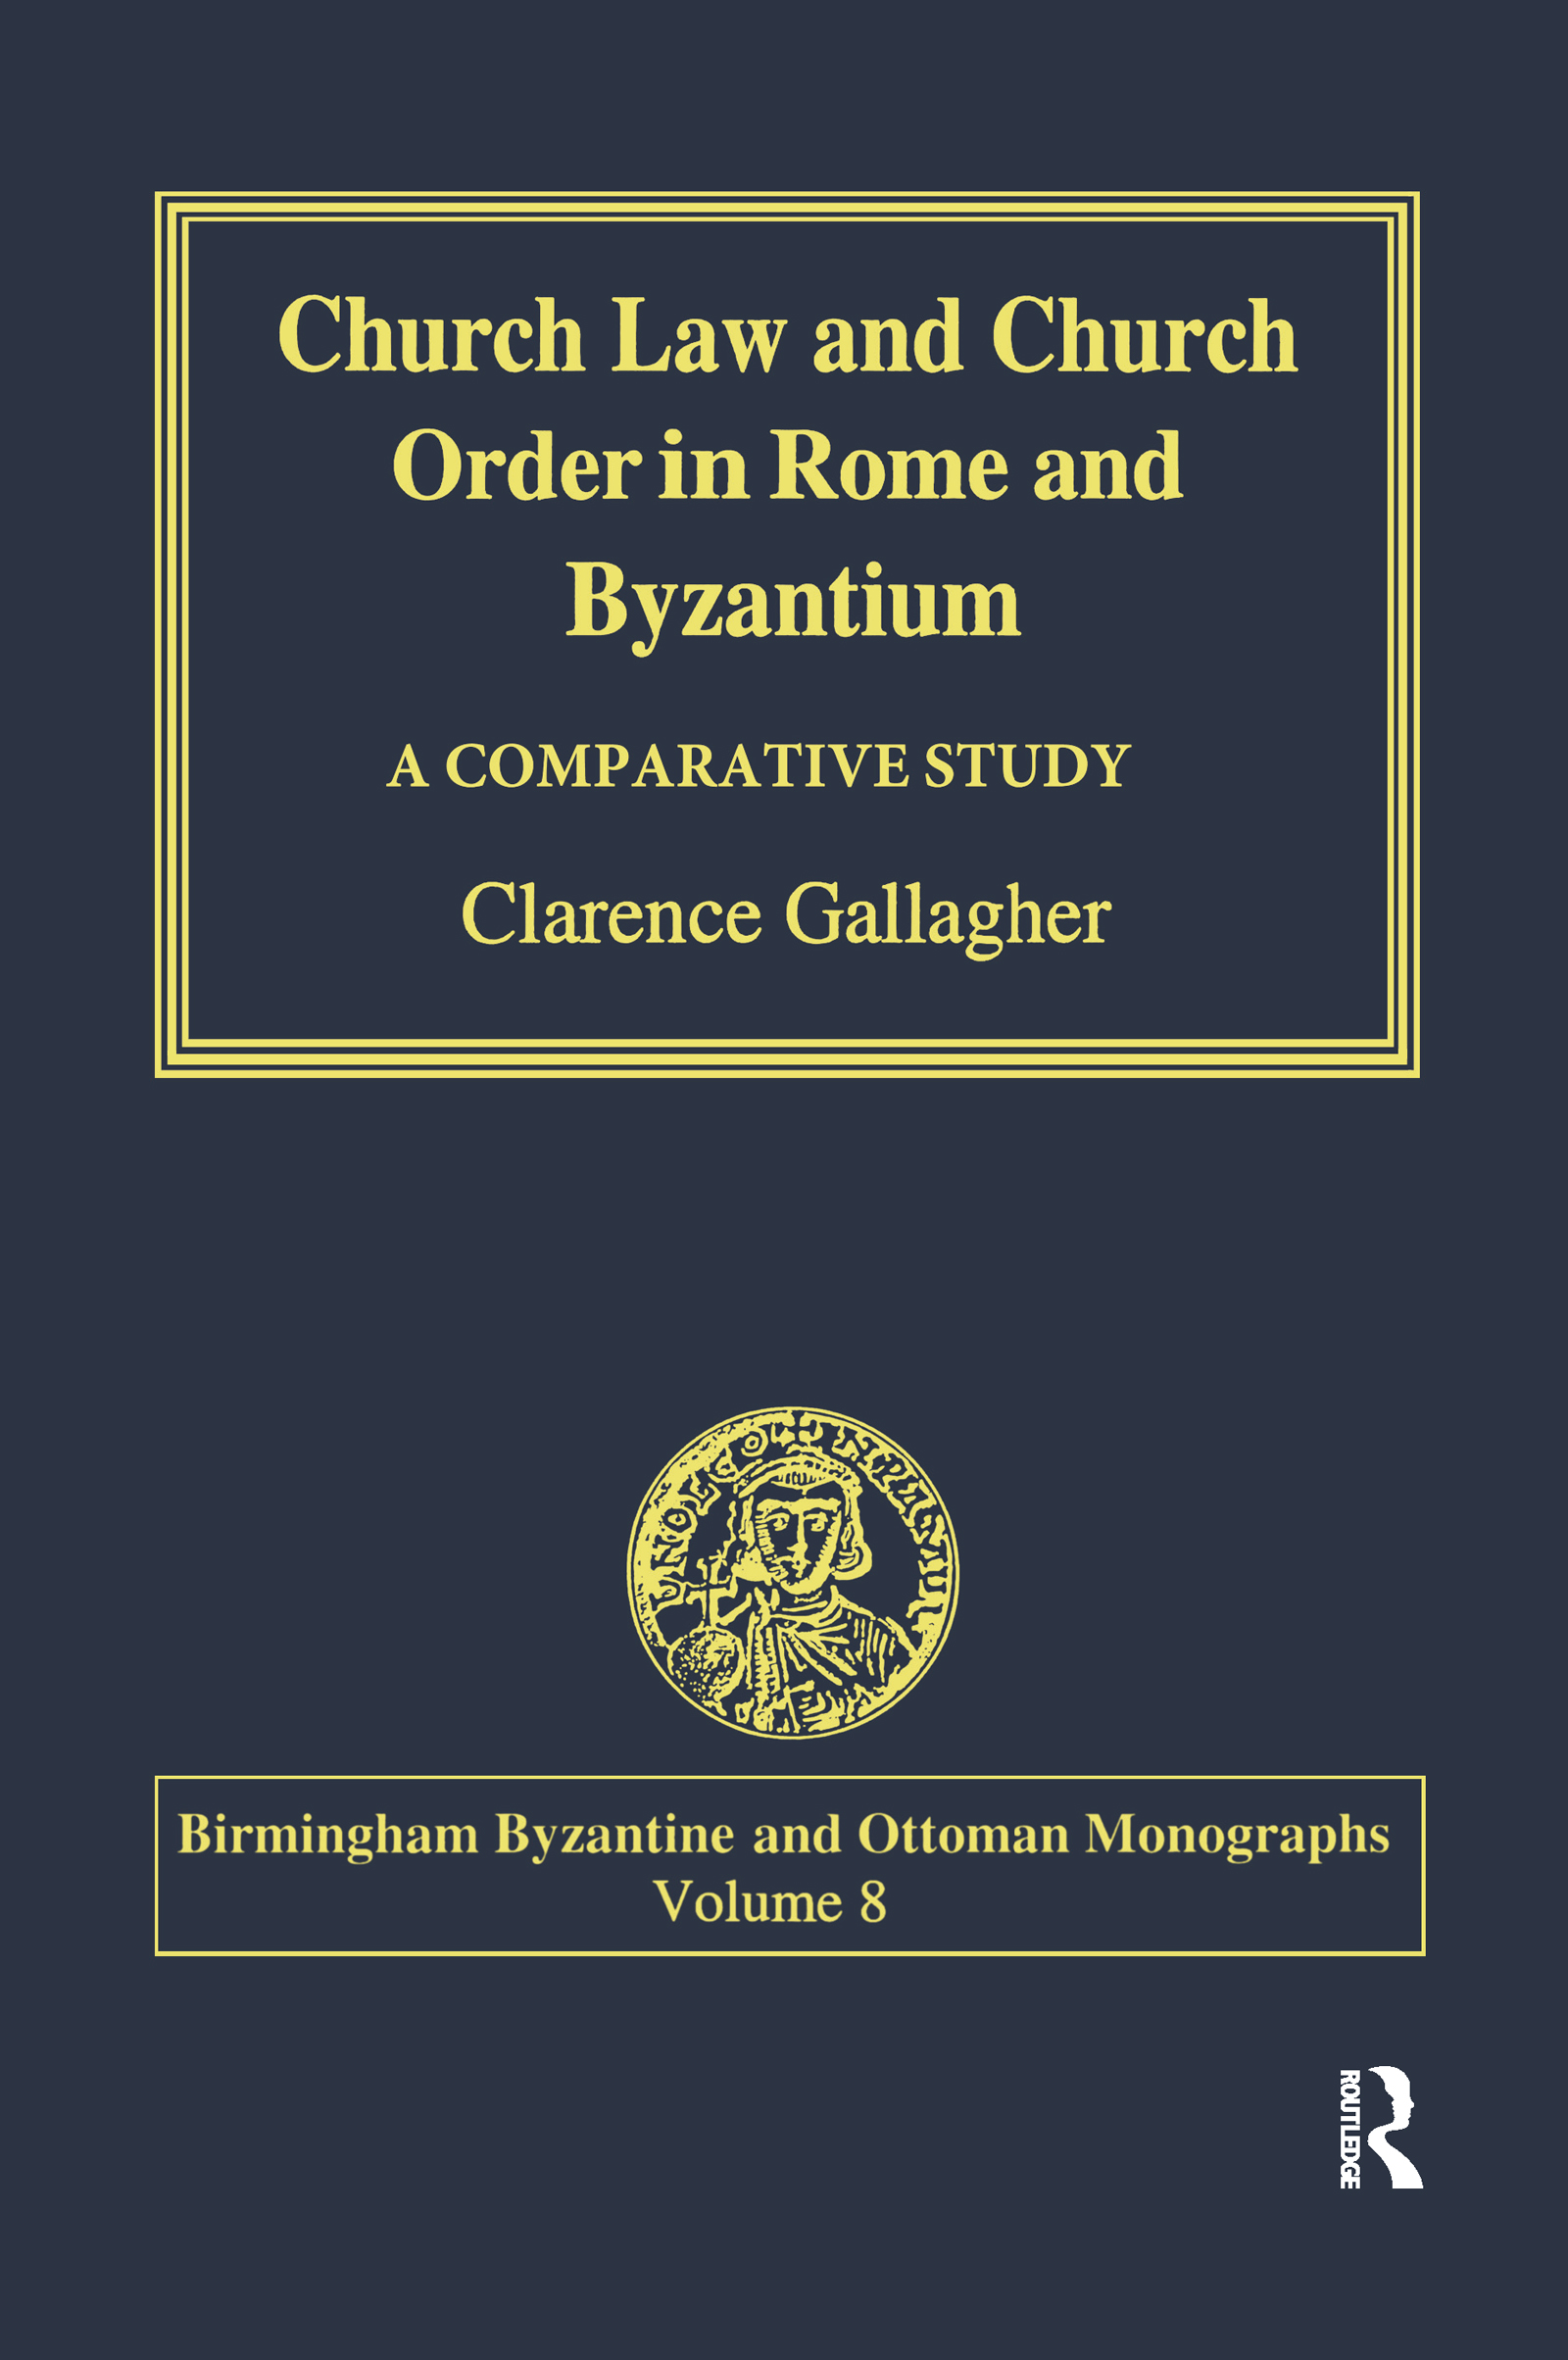 Church Law and Church Order in Rome and Byzantium: A Comparative Study book cover